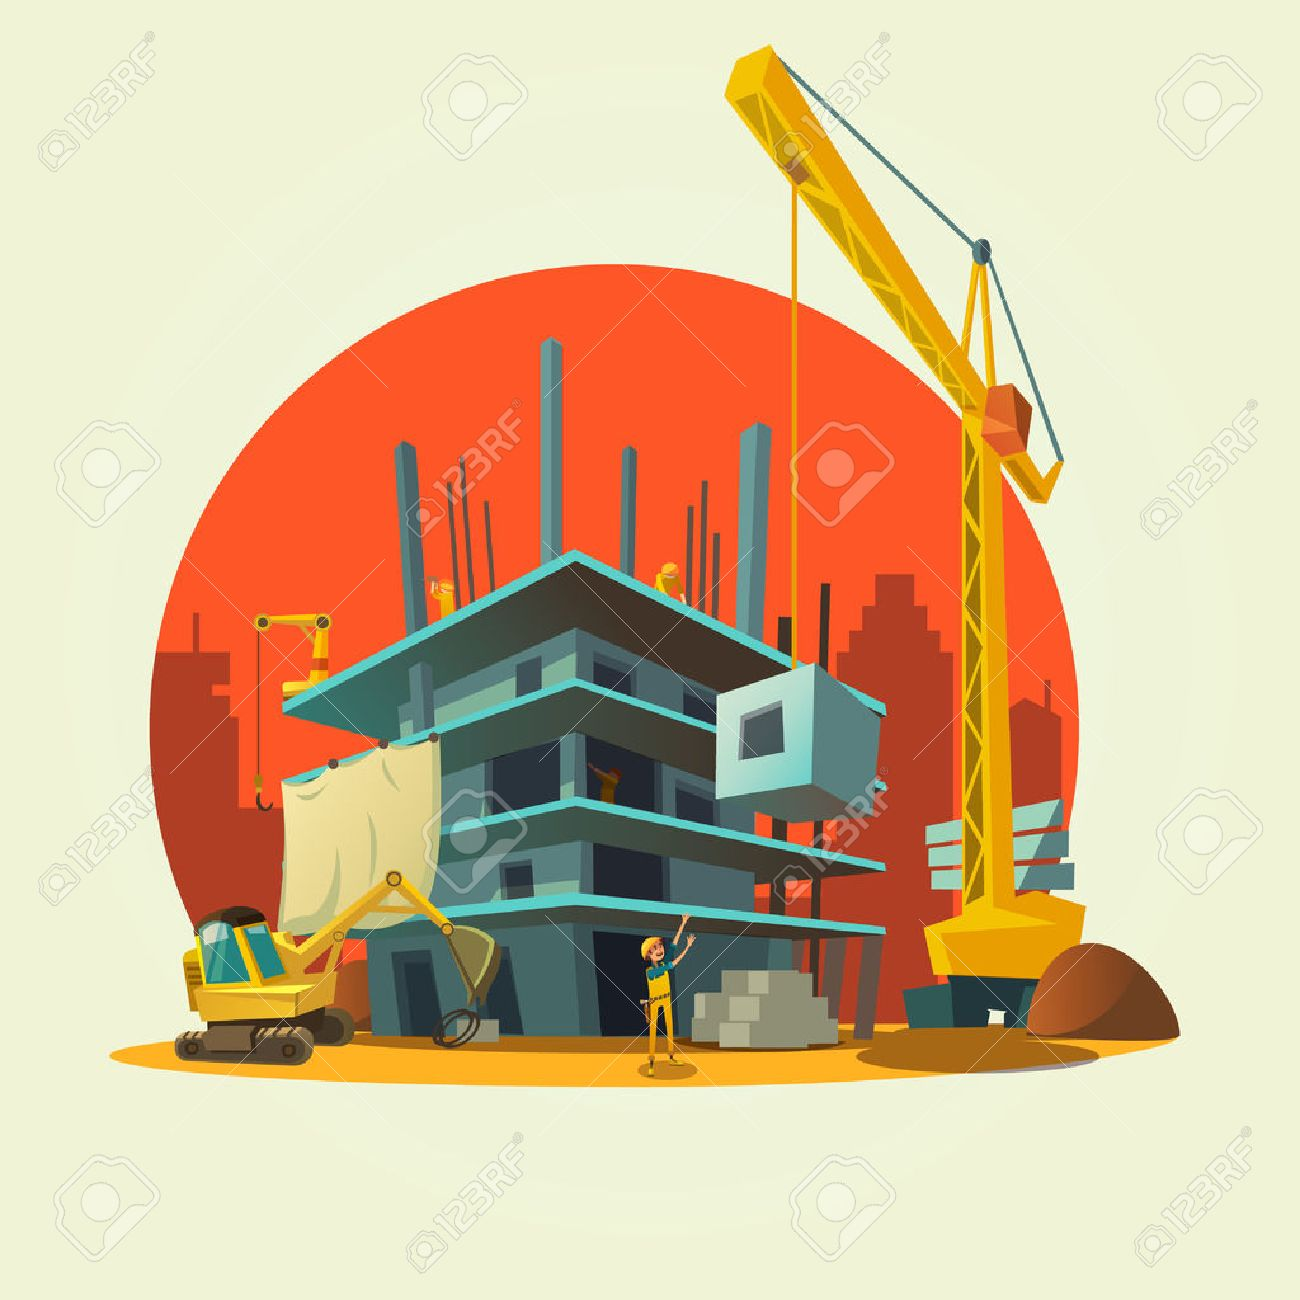 Construction concept with retro style concept workers and machines building house cartoon vector illustration - 50340884